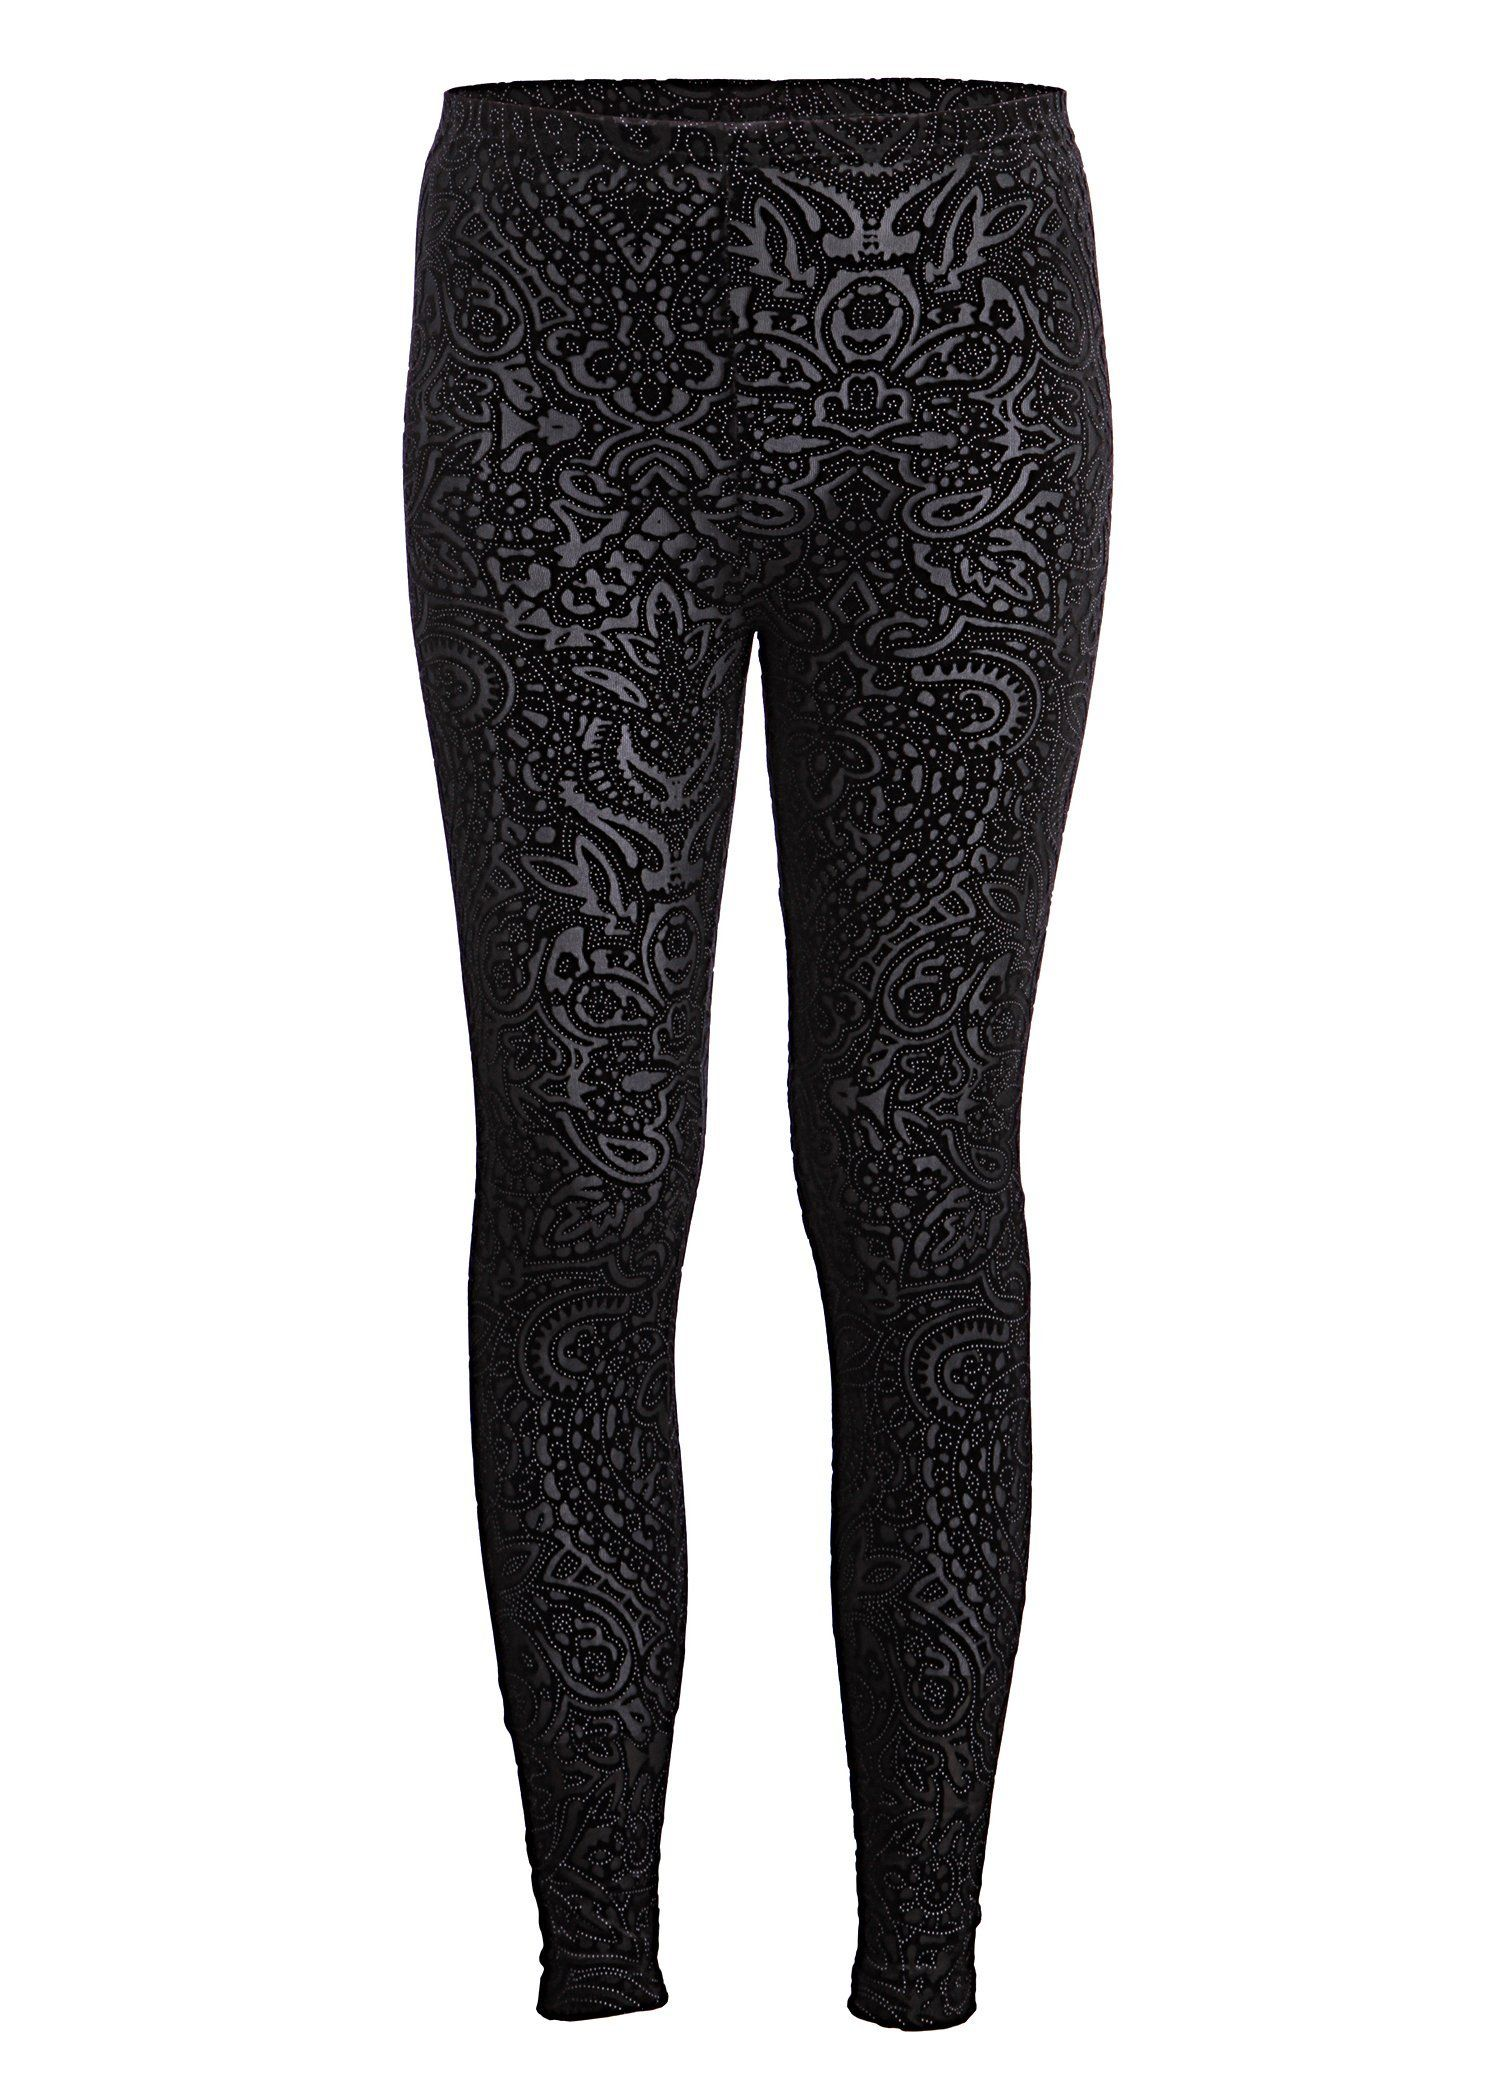 Pretty Attitude Beautiful Black Velvet Lace Look Leggings : Black Label $19.90 s